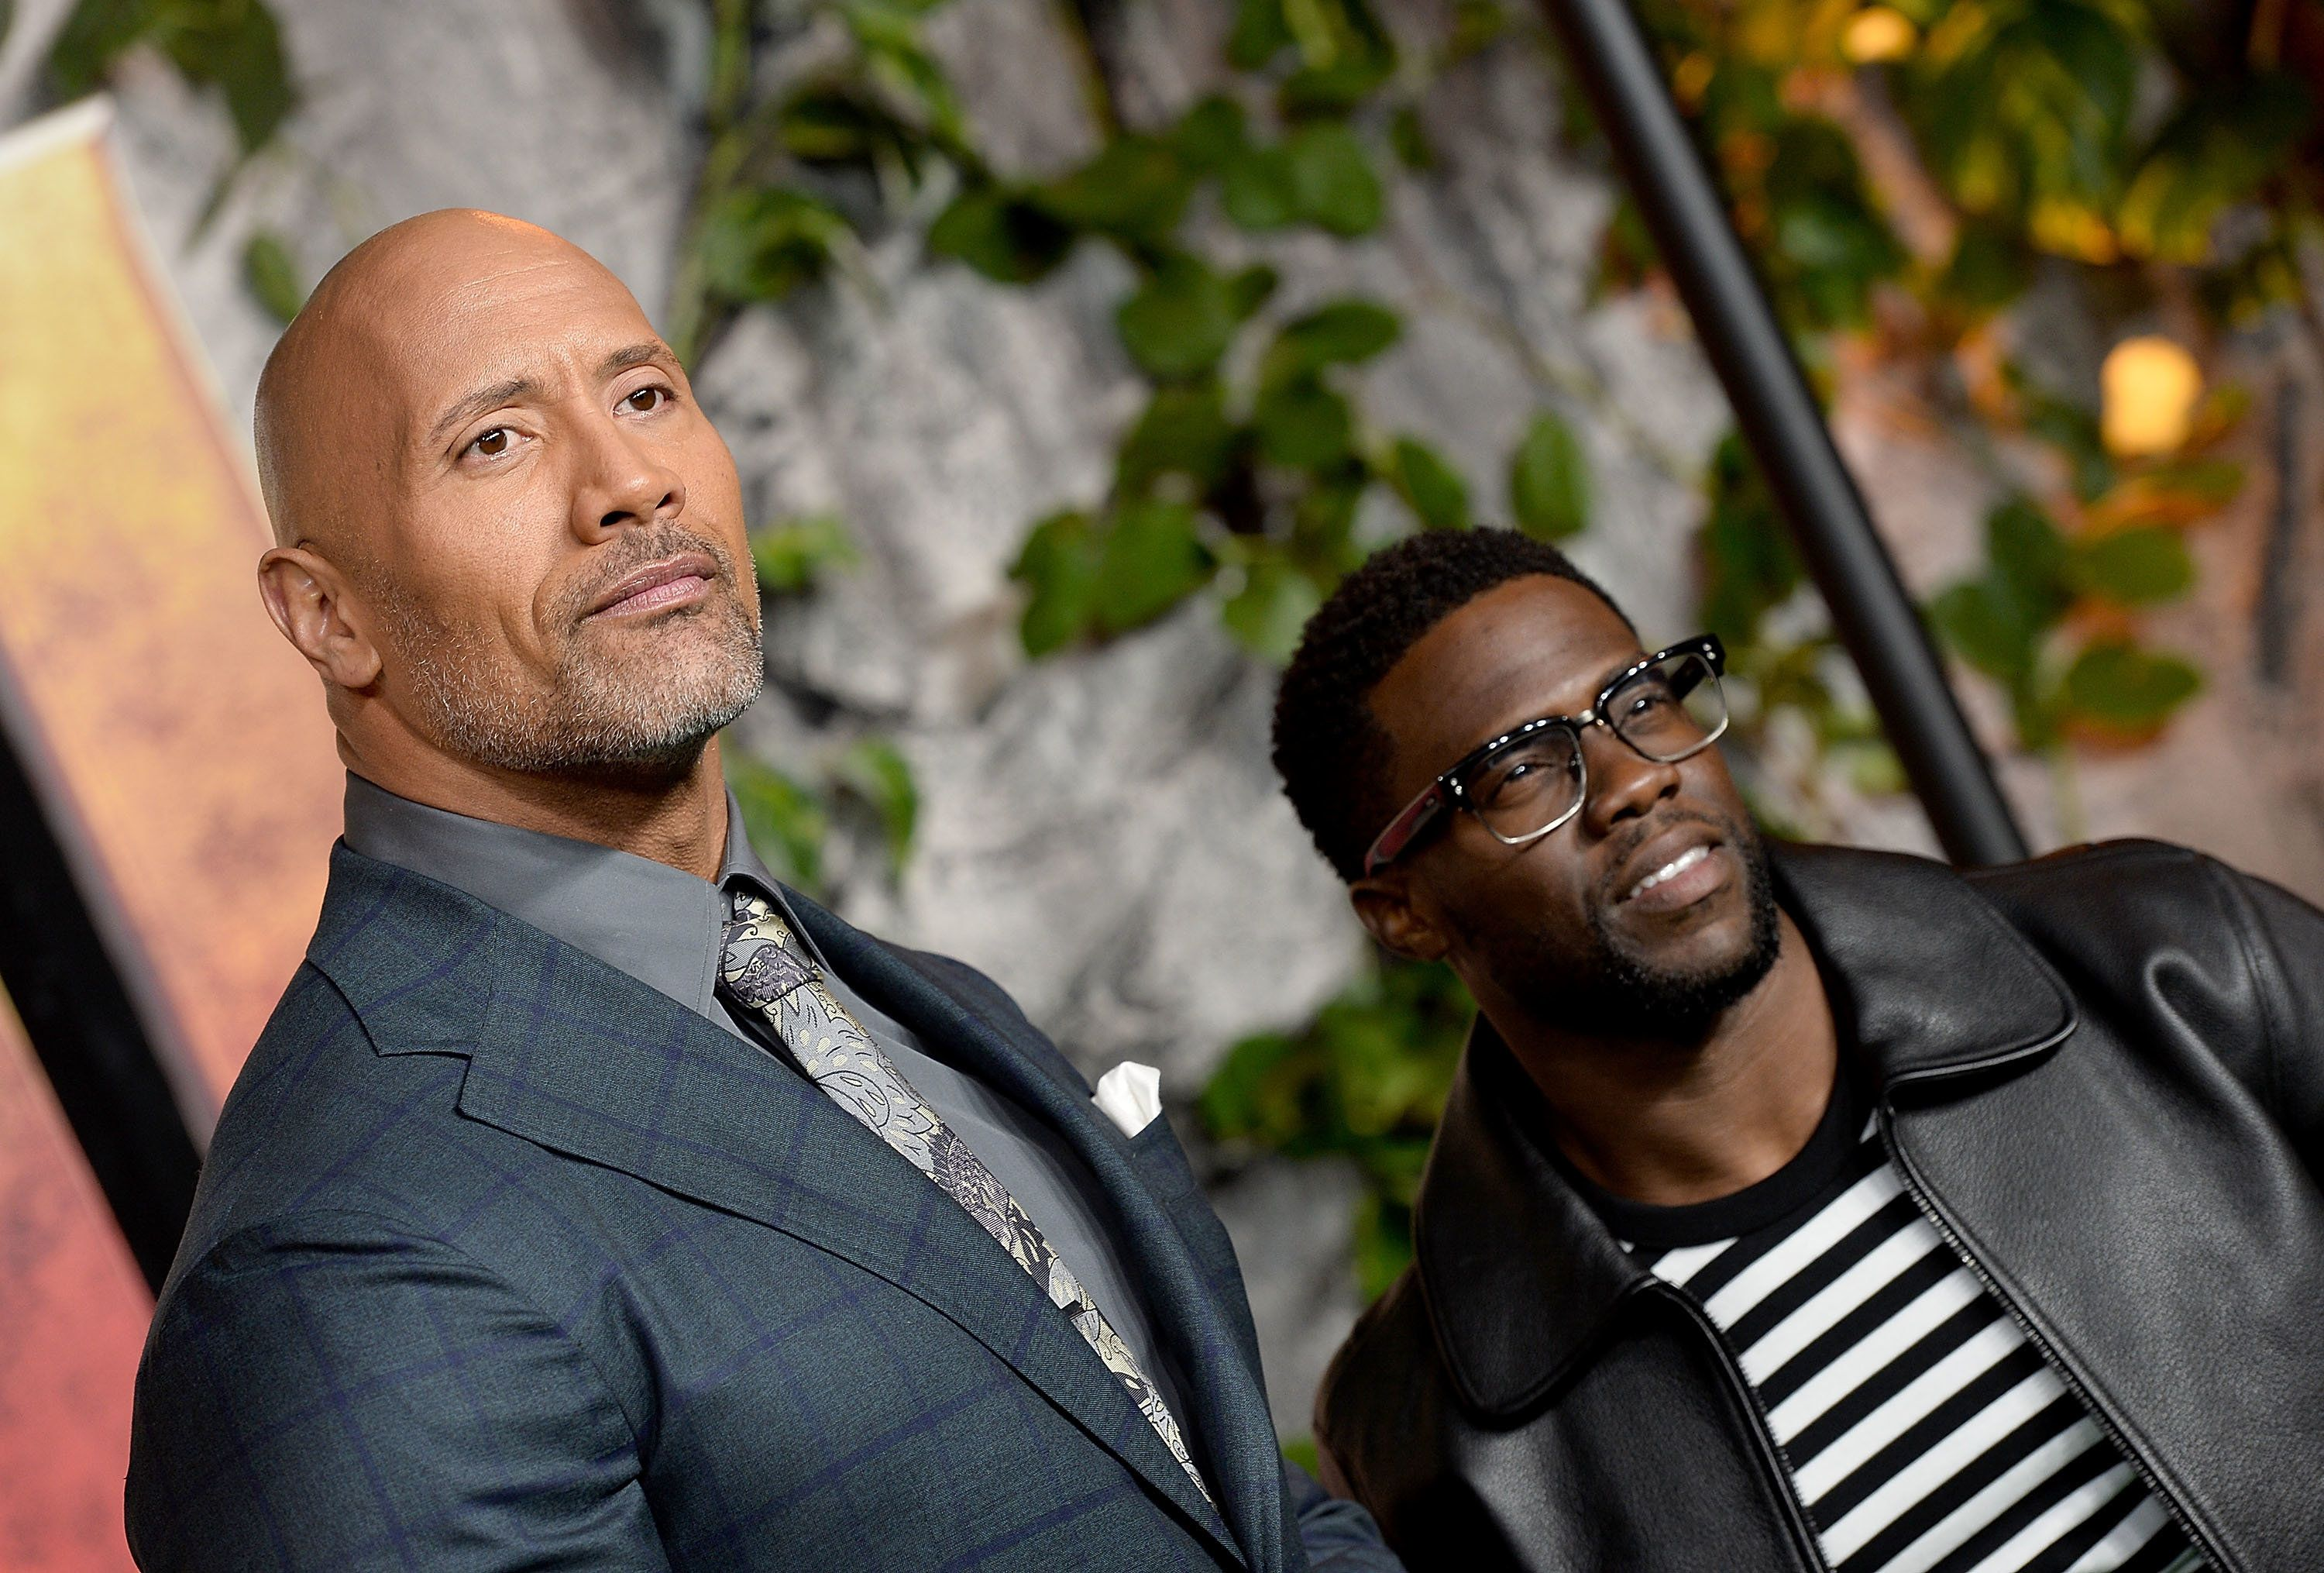 LONDON, ENGLAND - DECEMBER 07:  Dwayne Johnson (L) and Kevin Hart attend the 'Jumanji: Welcome To The Jungle' UK premiere held at Vue West End on December 7, 2017 in London, England.  (Photo by Jeff Spicer/Jeff Spicer/Getty Images)